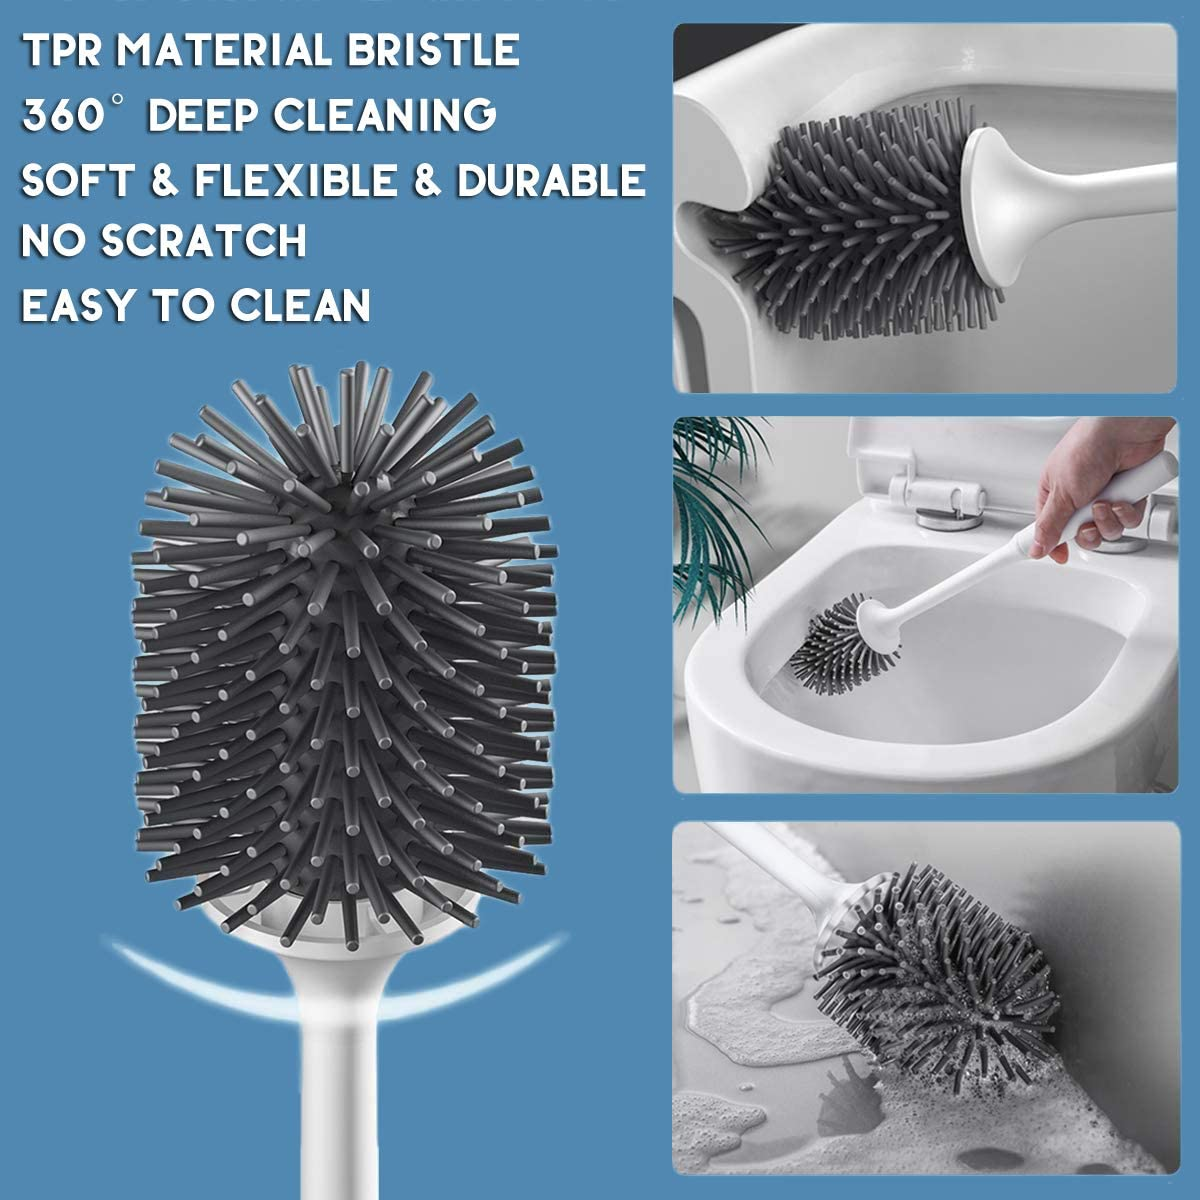 AEROFRESH Toilet brush and holder set, TPR Silicone toilet cleaner brush